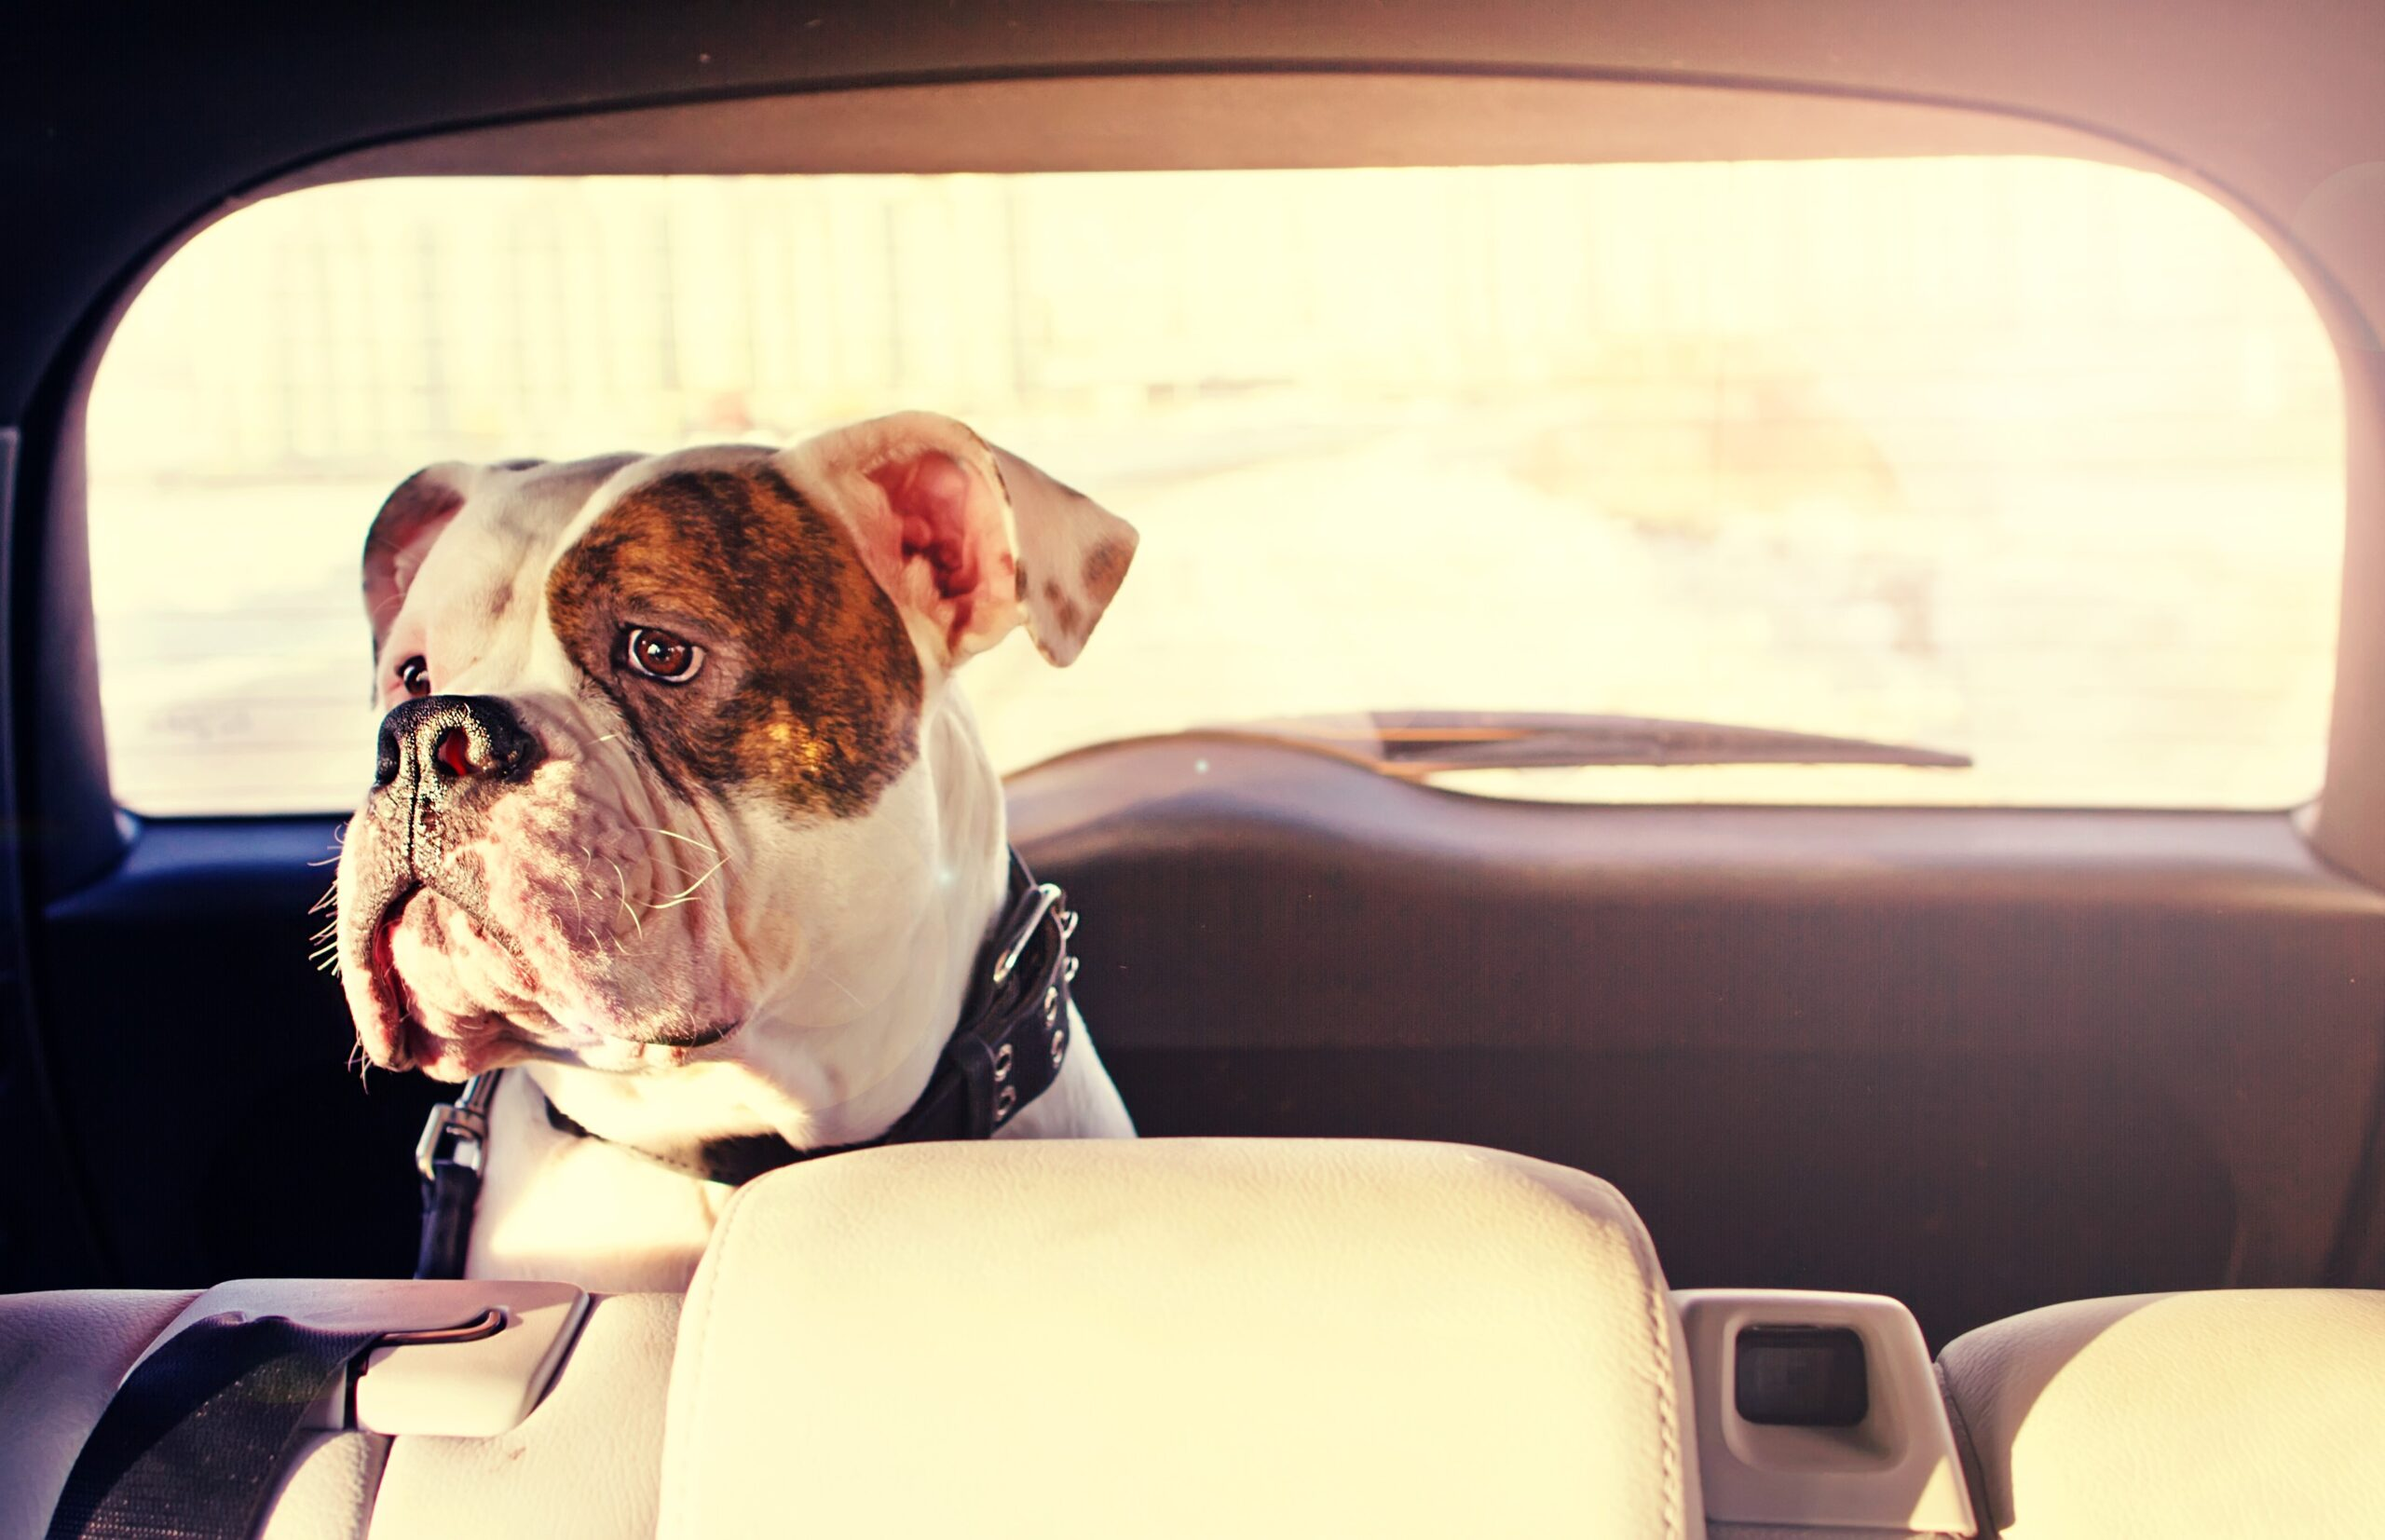 Dog Car Sickness and Motion Sickness